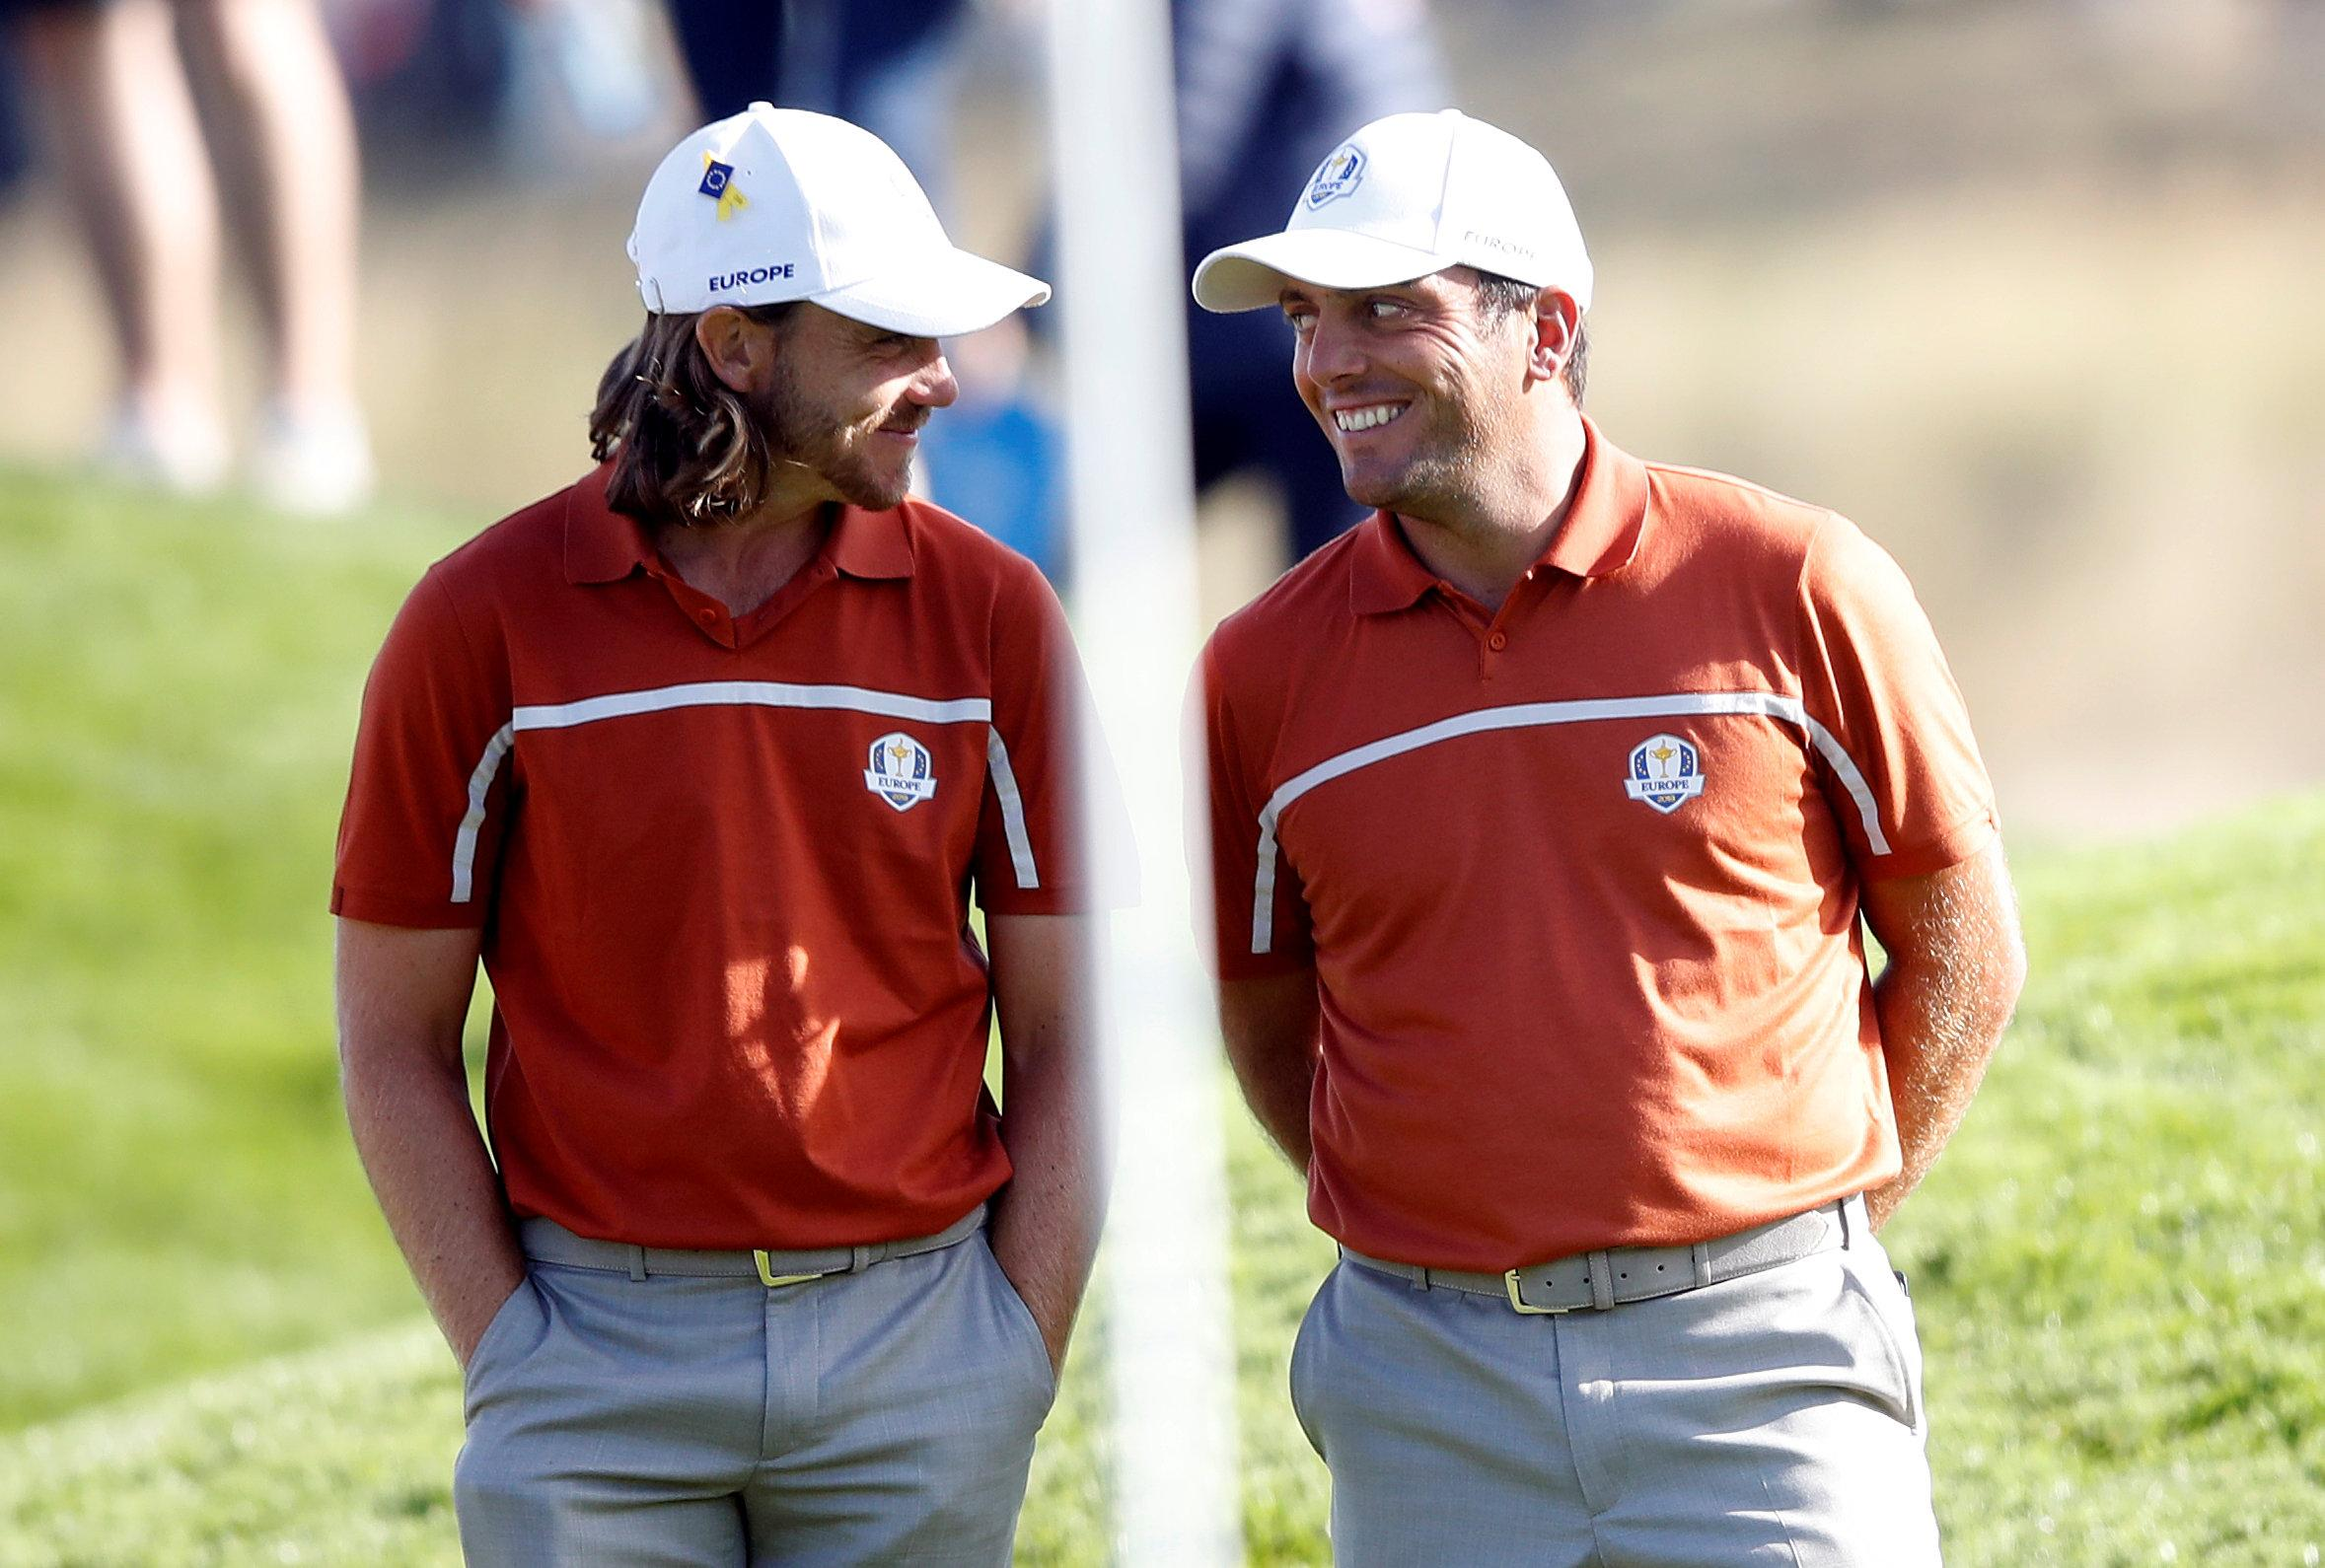 Tommy Fleetwood and Francisco Molinari won all four of their matches together on Friday and Saturday